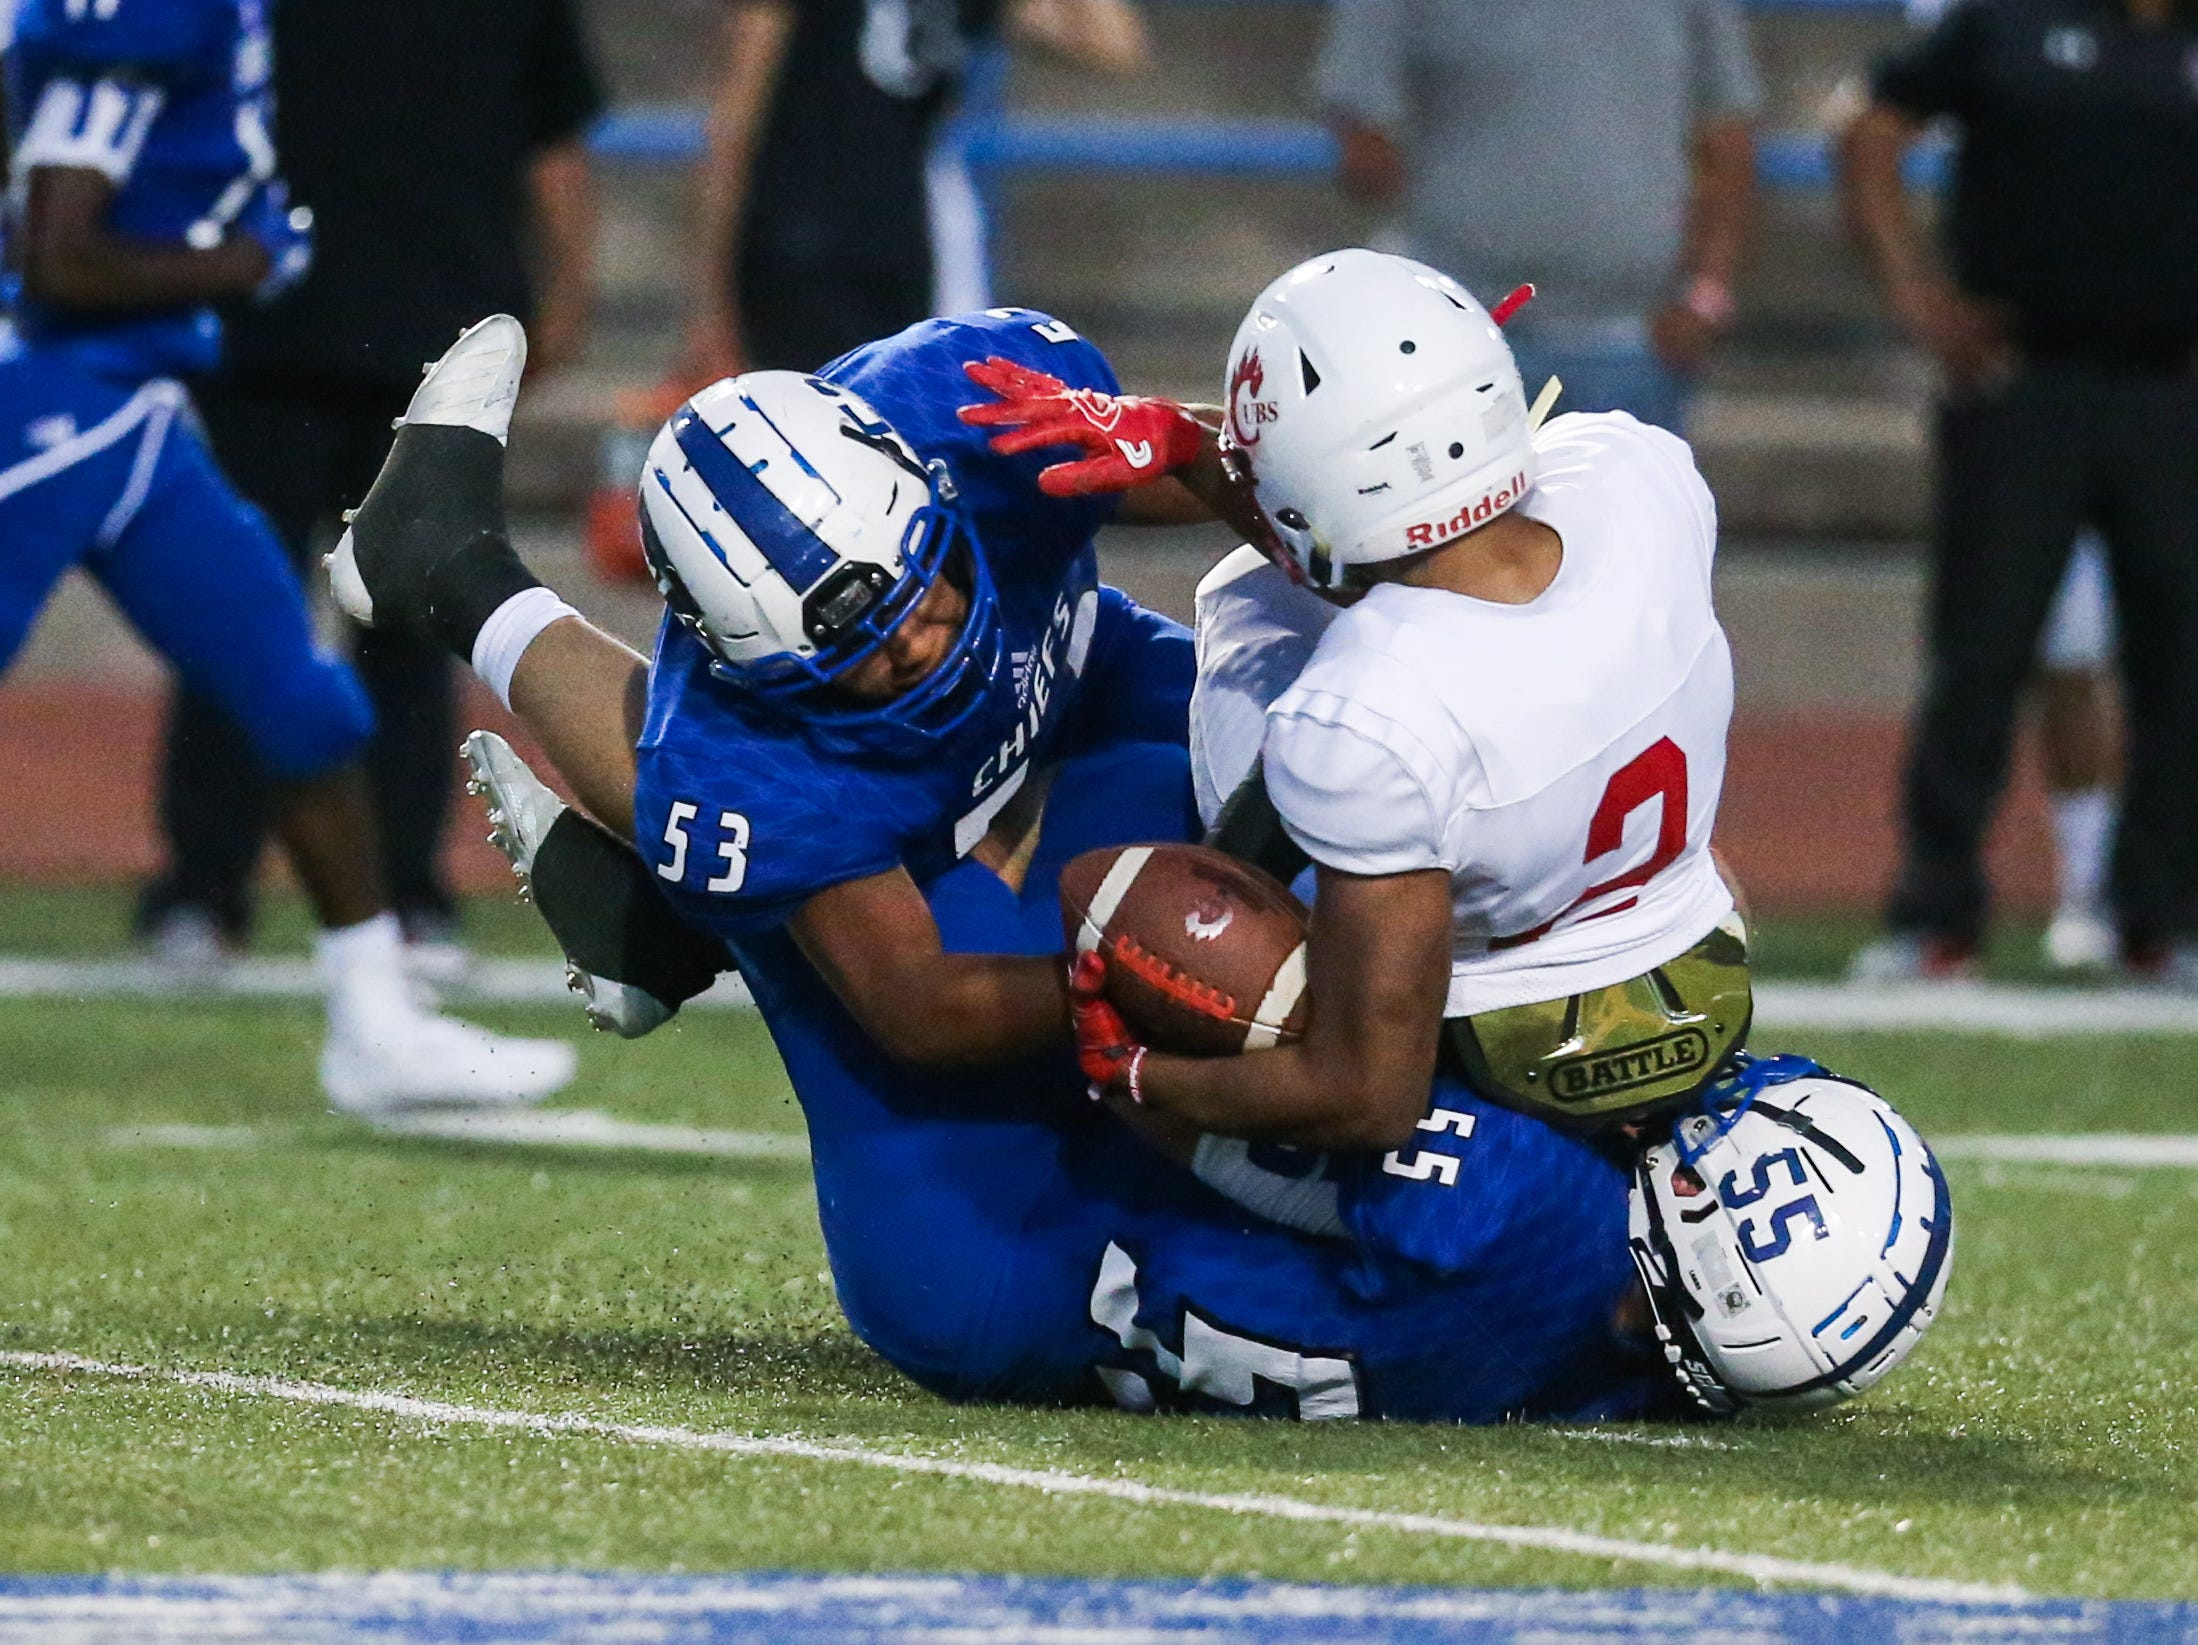 Lake View defense tackle Brownfield ball carrier Thursday, Oct. 4, 2018, at San Angelo Stadium.